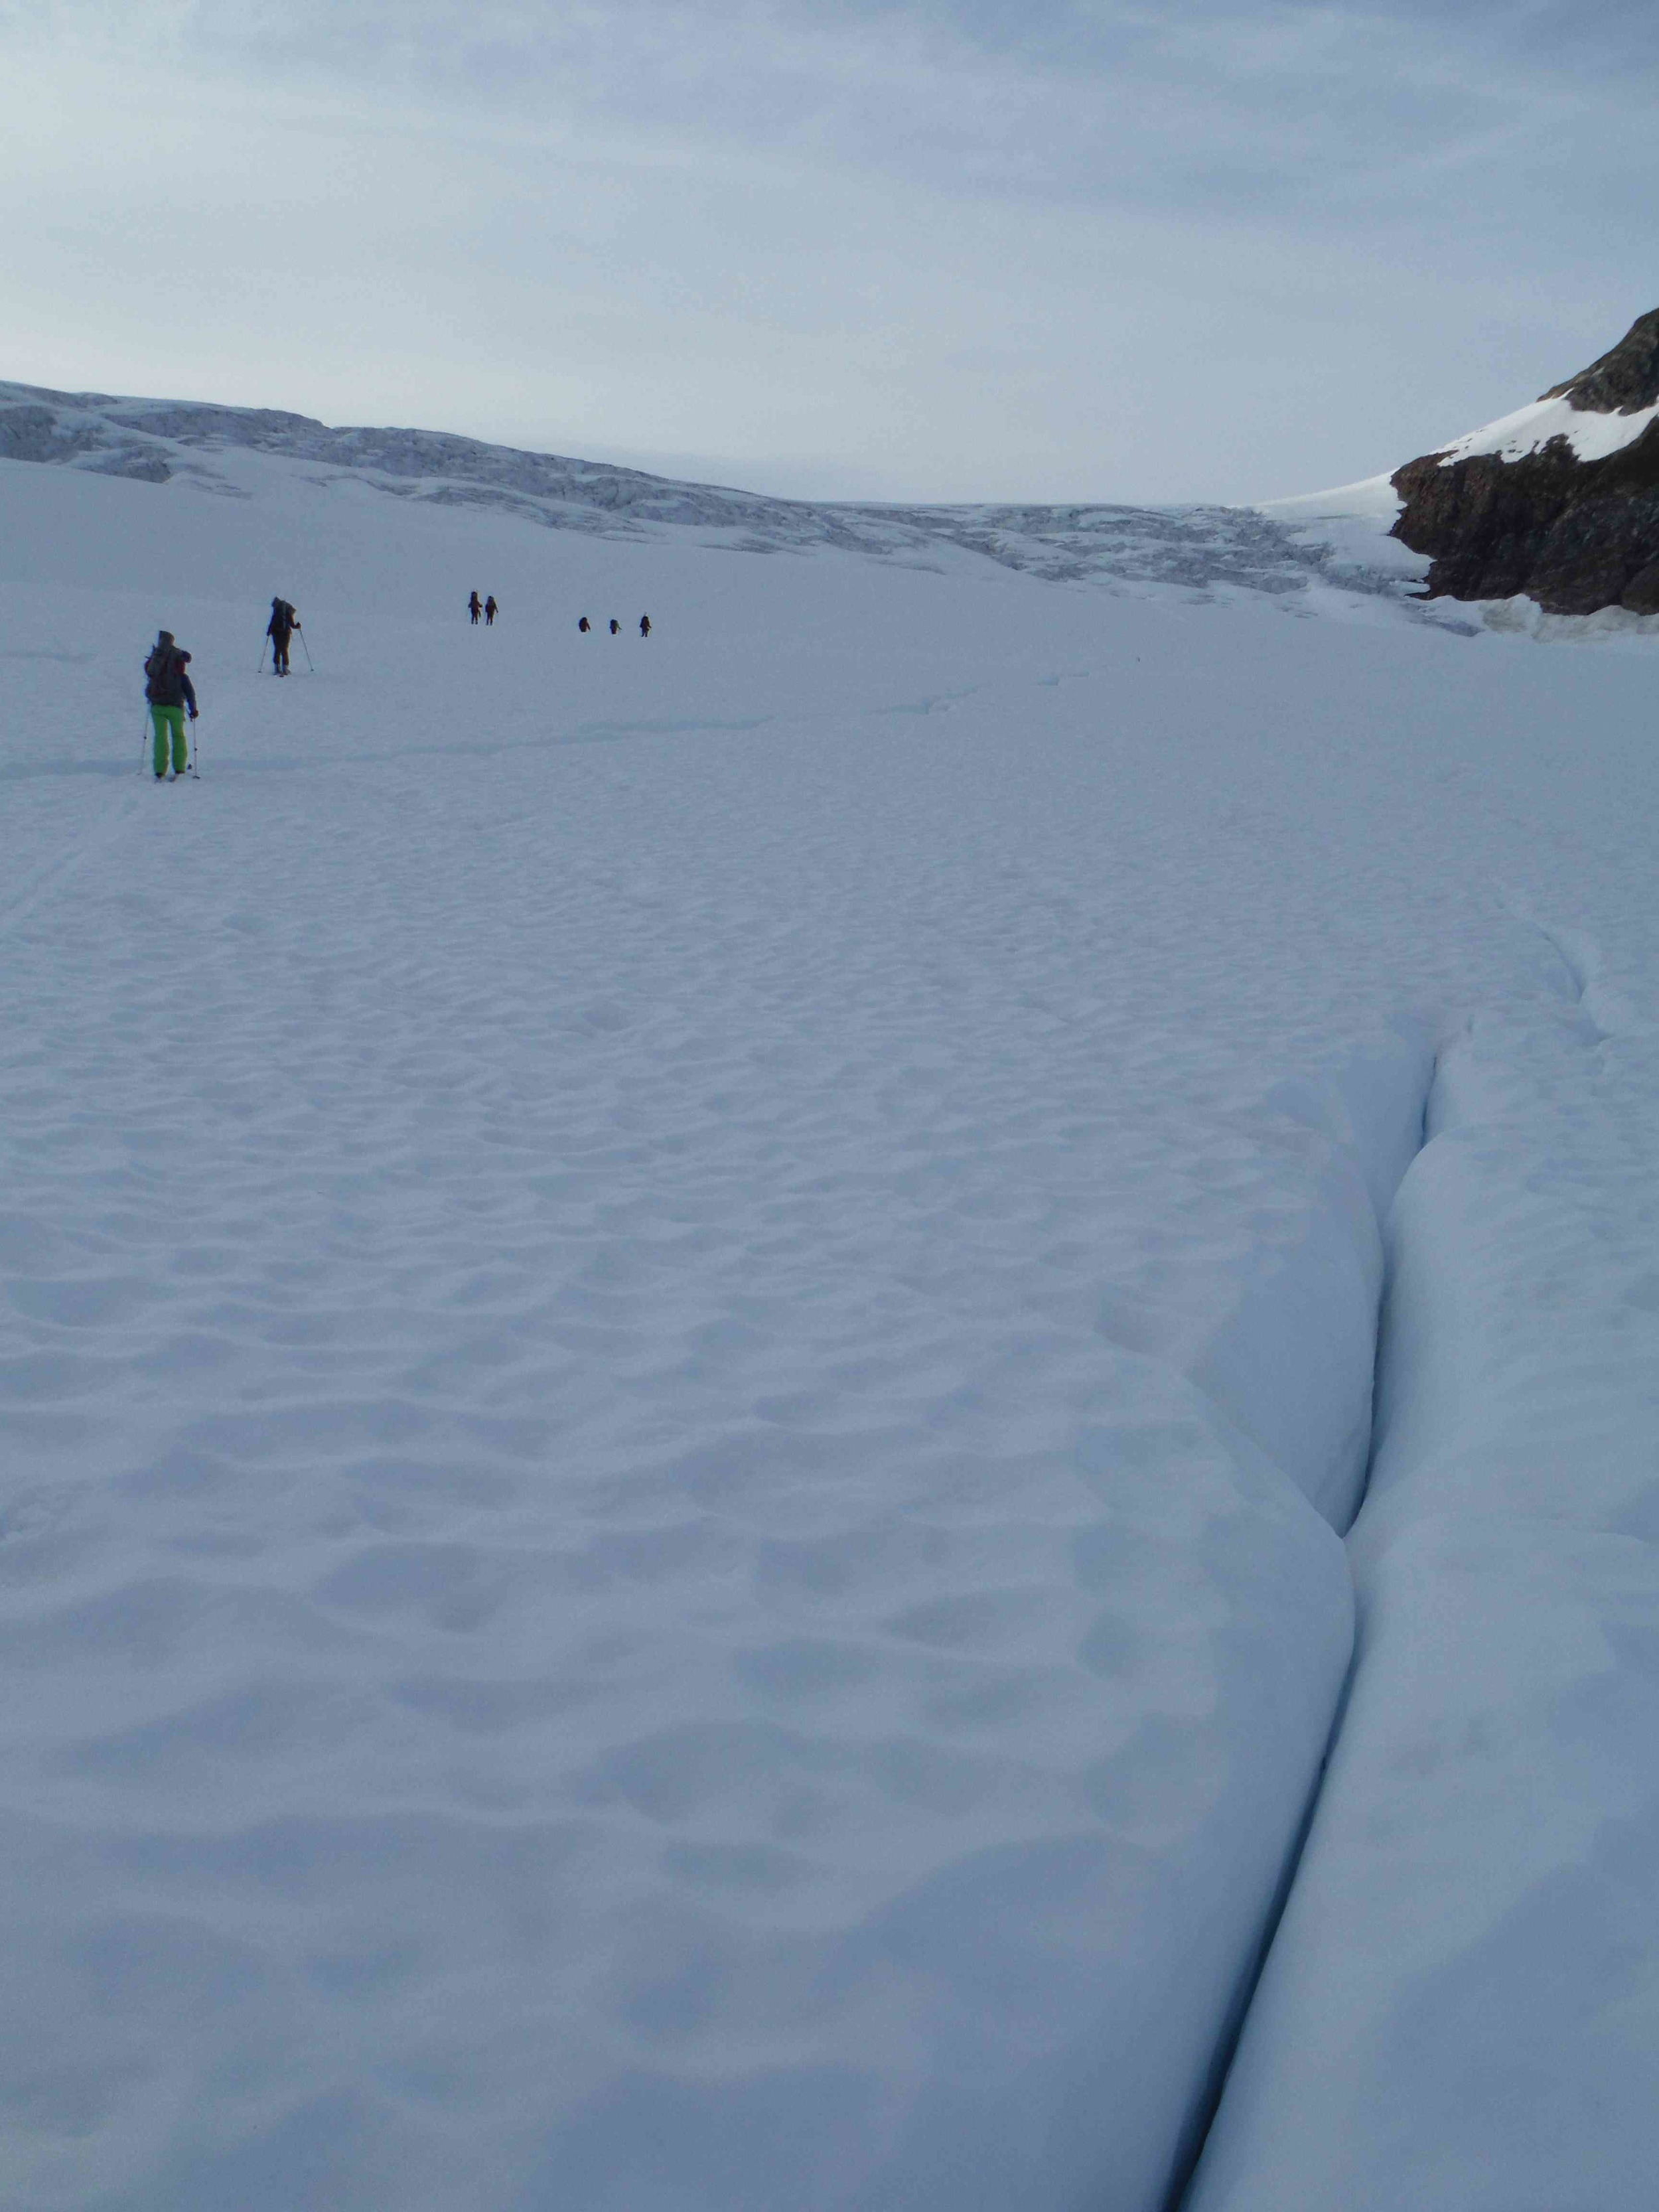 Skiers make their way up to the Norris Icefall.  Photo by Sarah Bouckoms.